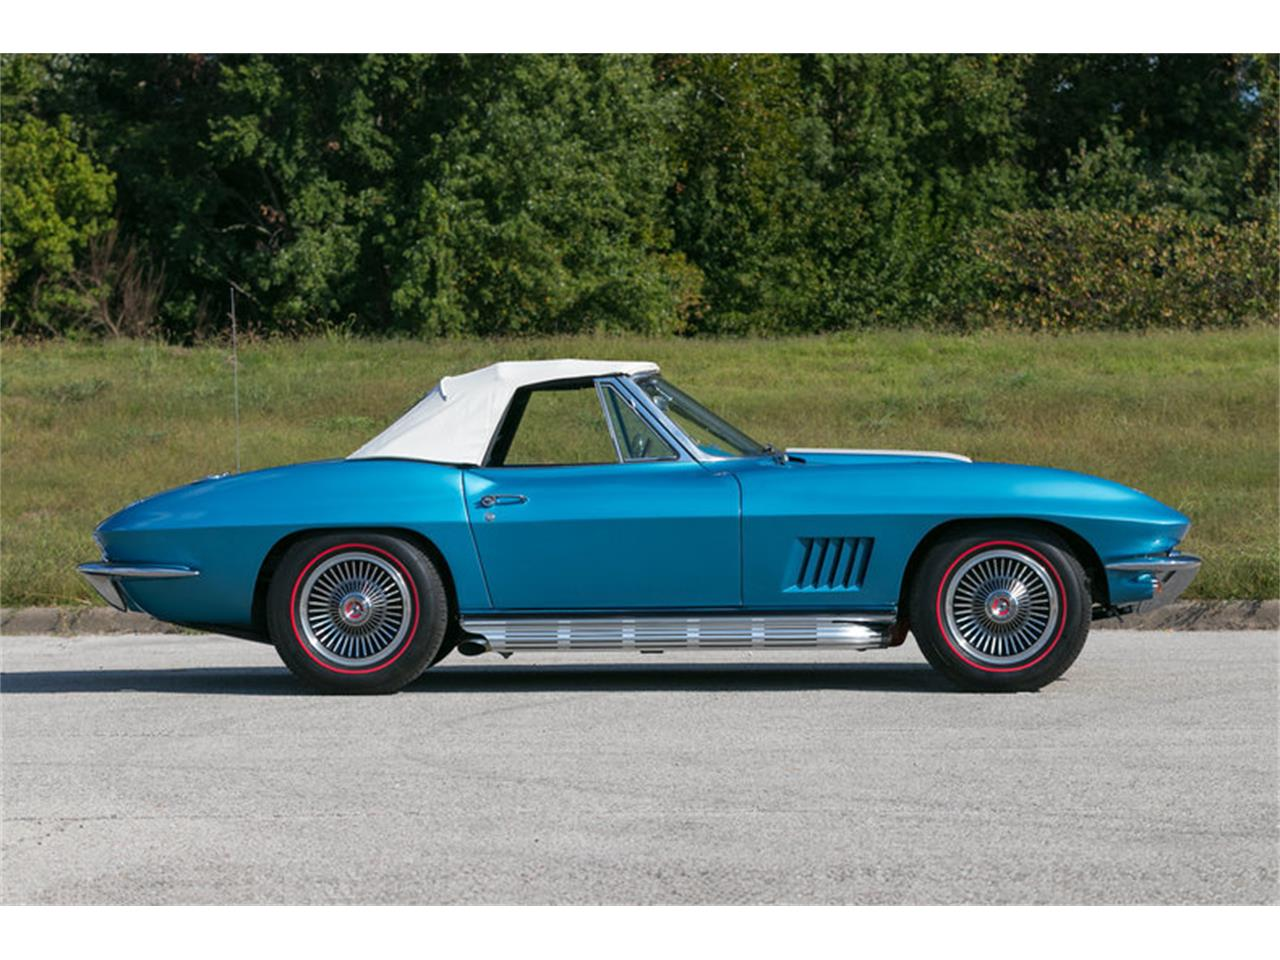 Large Picture of Classic 1967 Chevrolet Corvette located in St. Charles Missouri - $99,995.00 - MDUJ